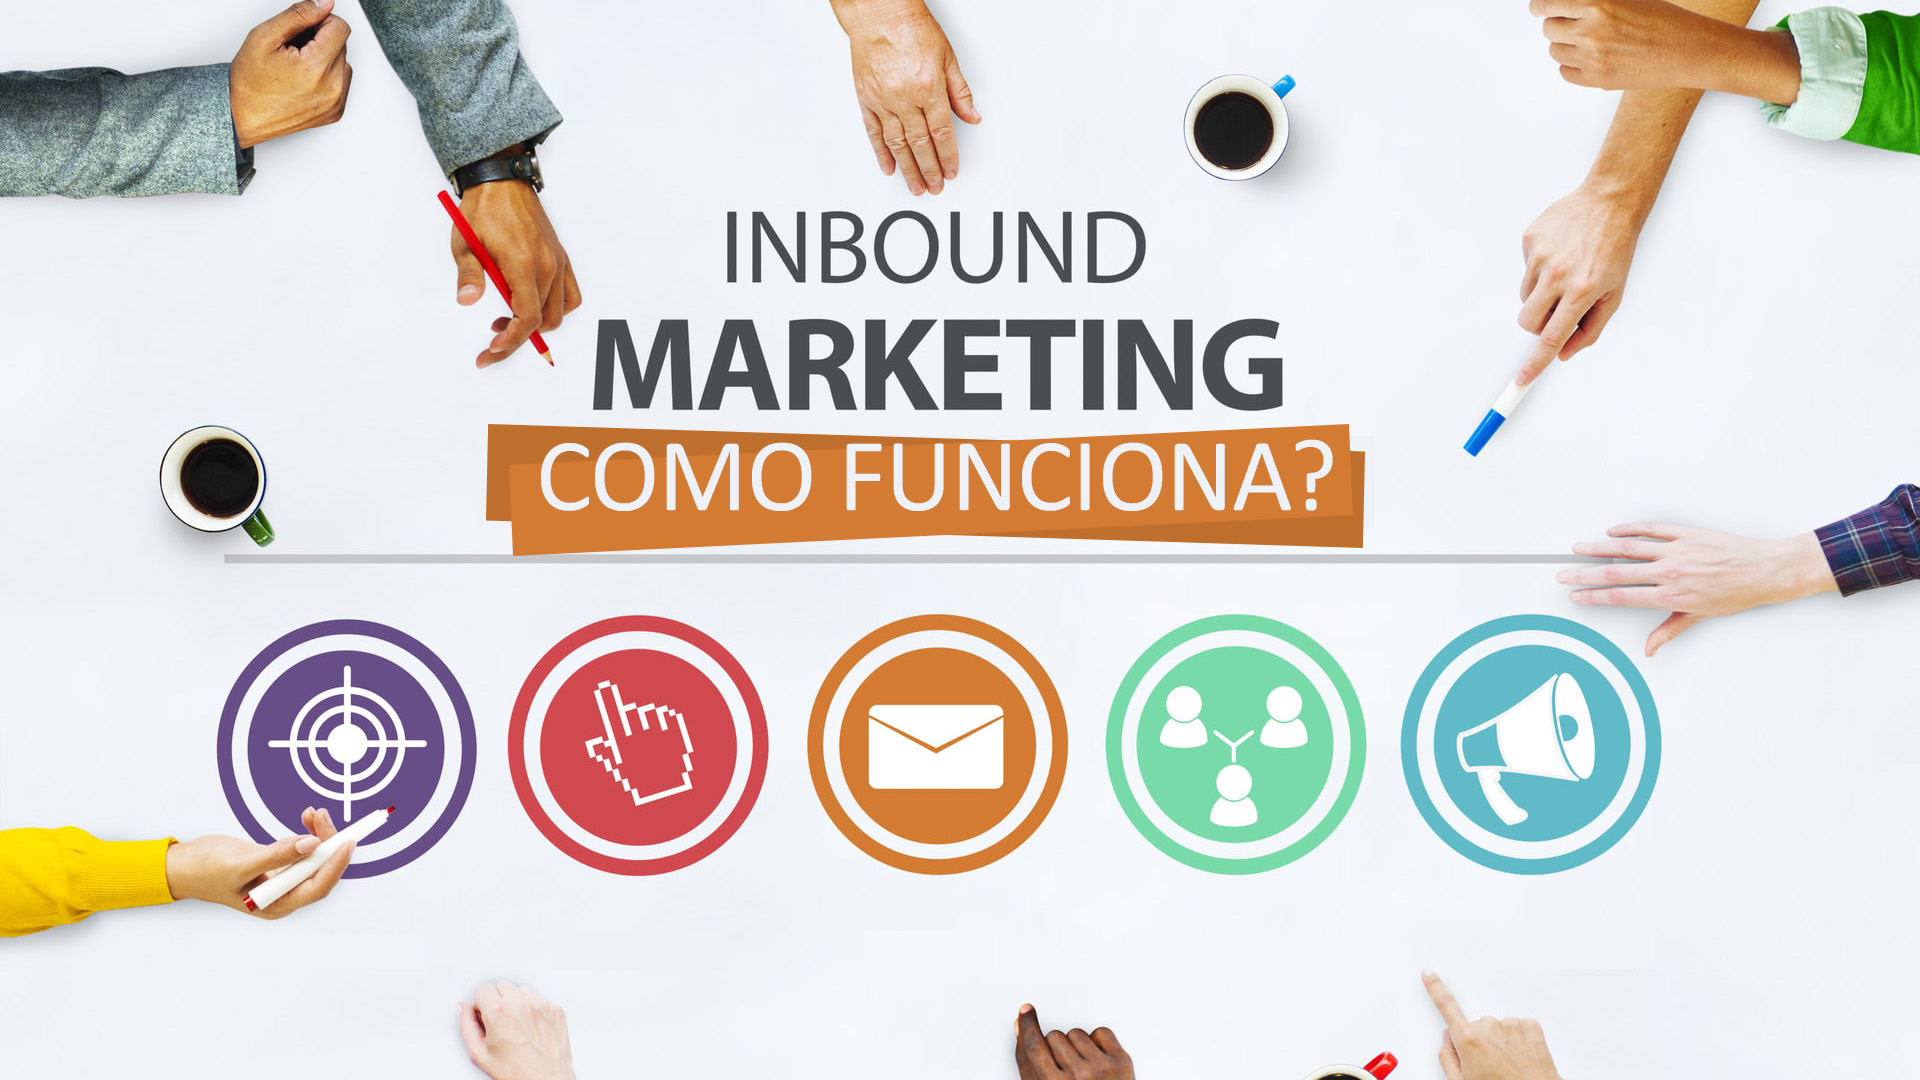 Como funciona o Inbound Marketing?